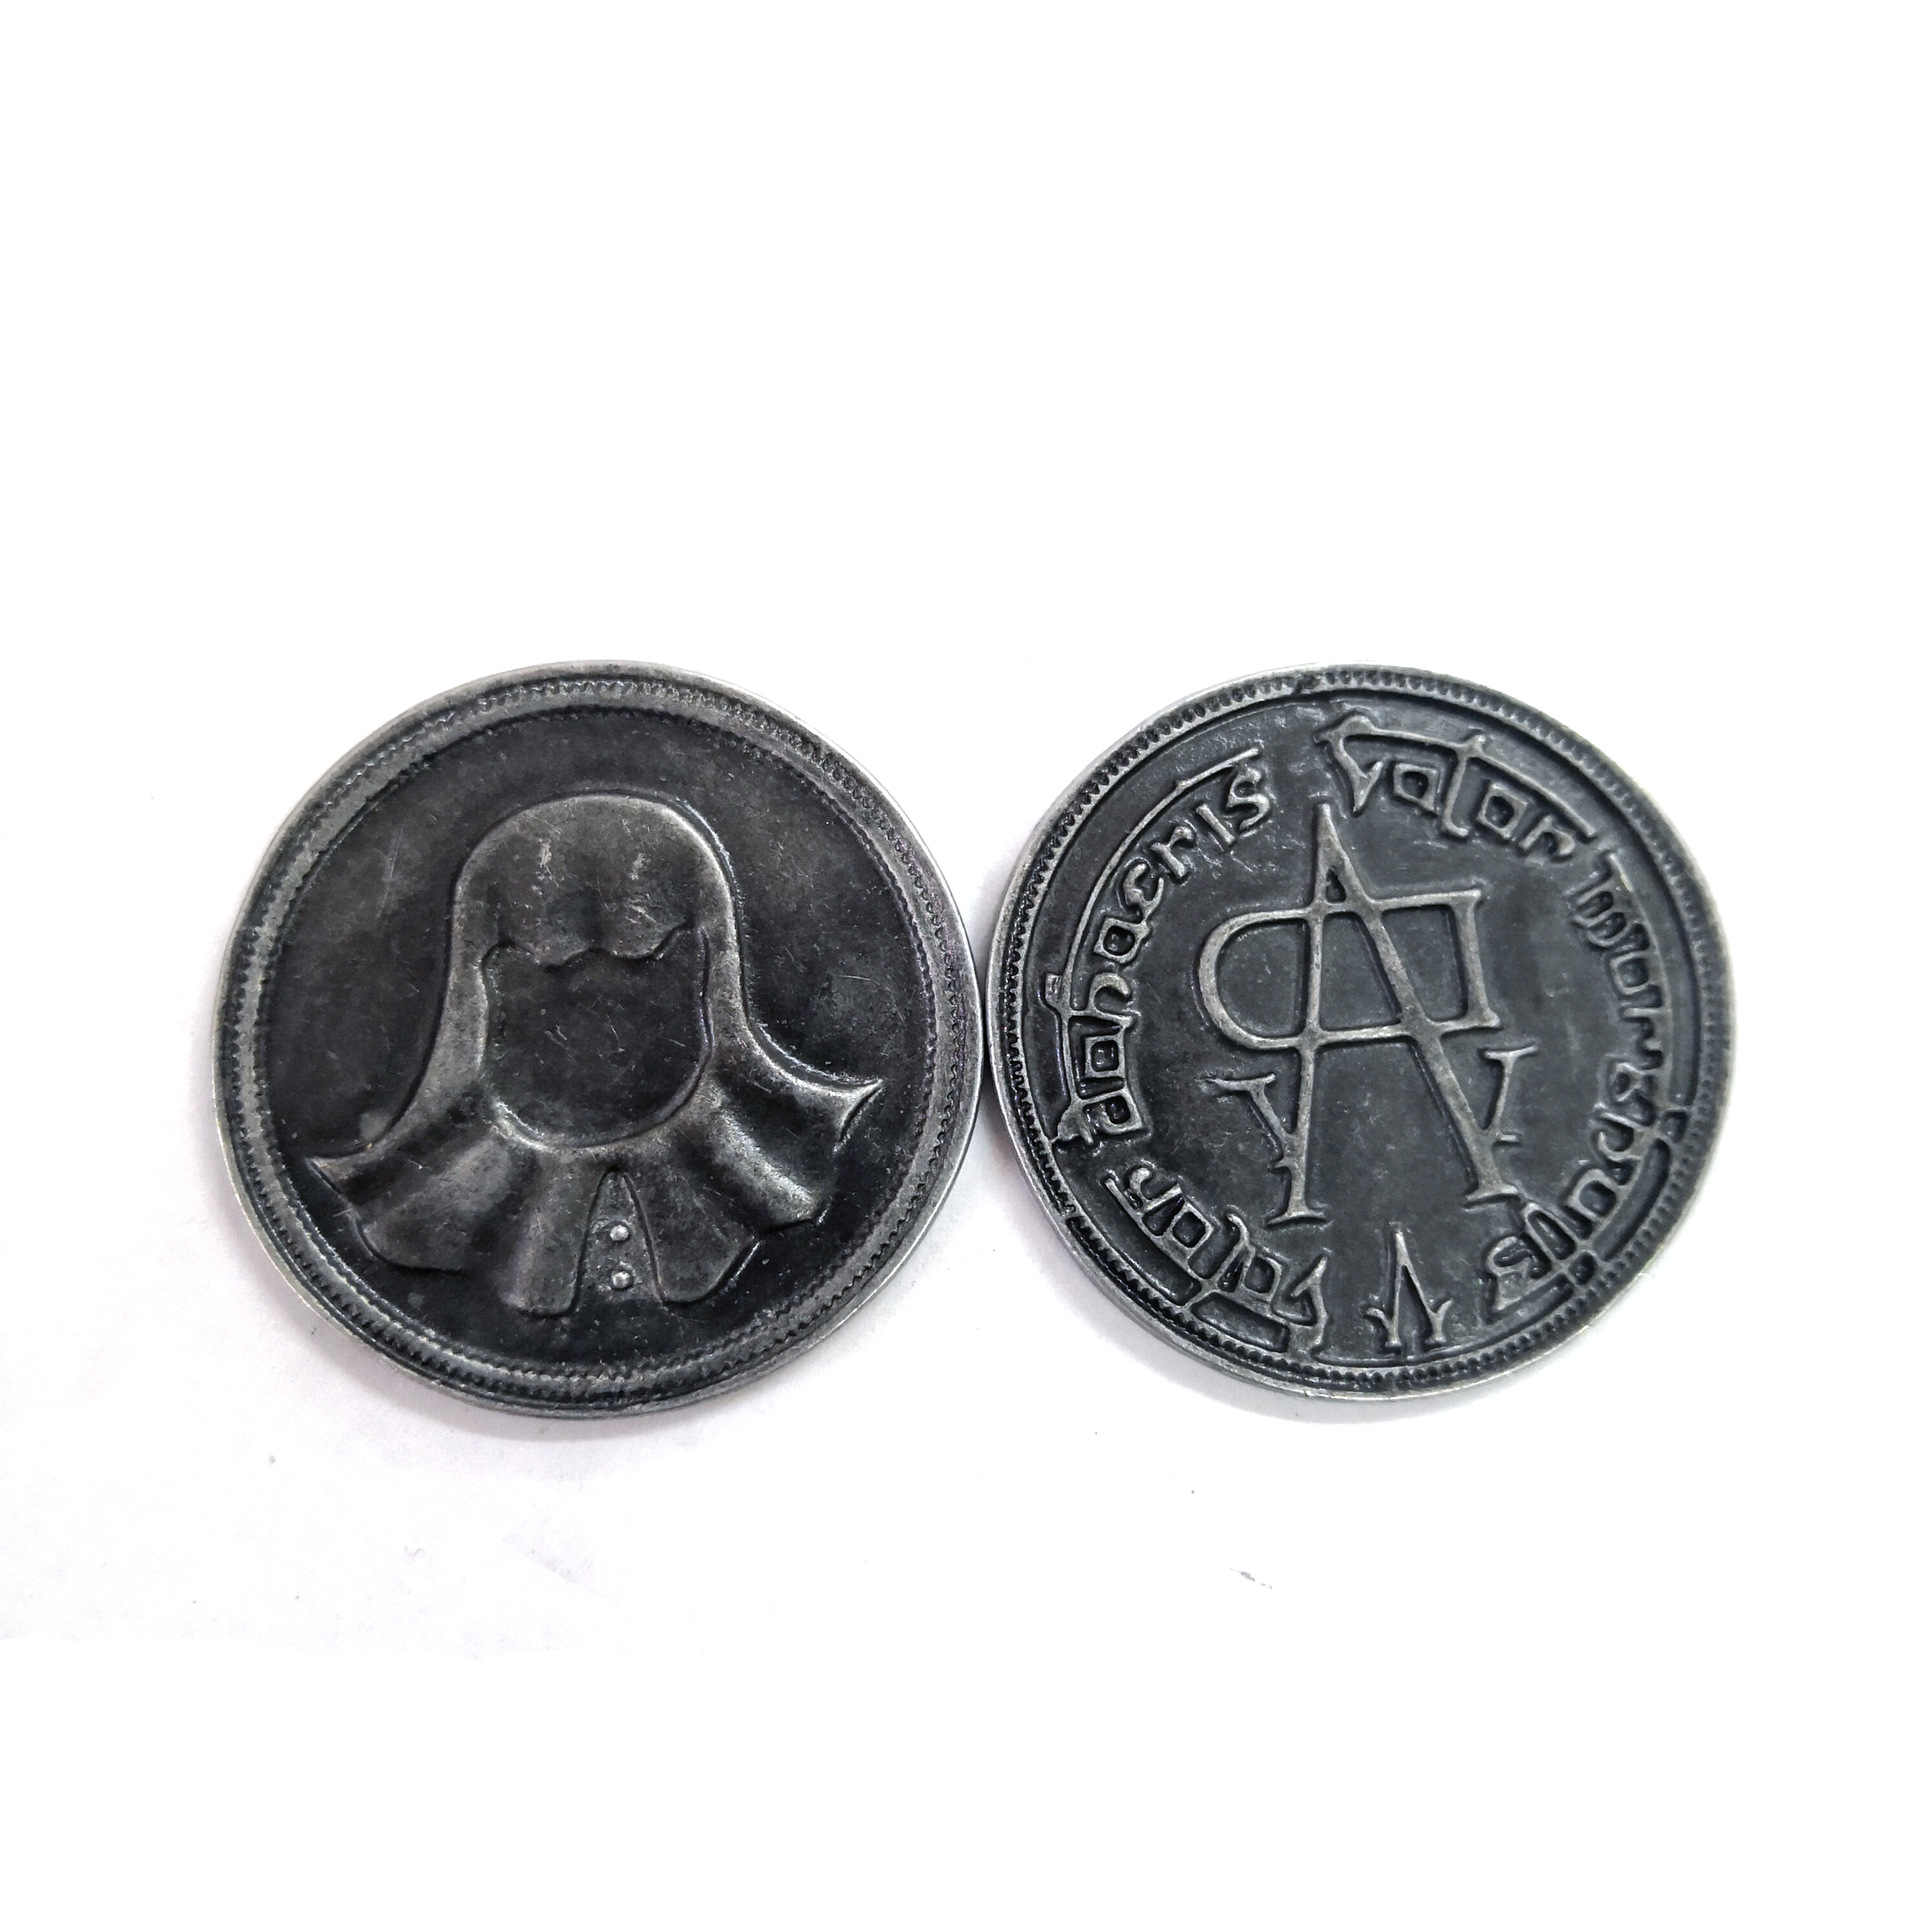 A Song of Ice and Fire Game of Thrones Faceless Men Coin Valar Morghulis Jaqen H'ghar Aaliyah Badge